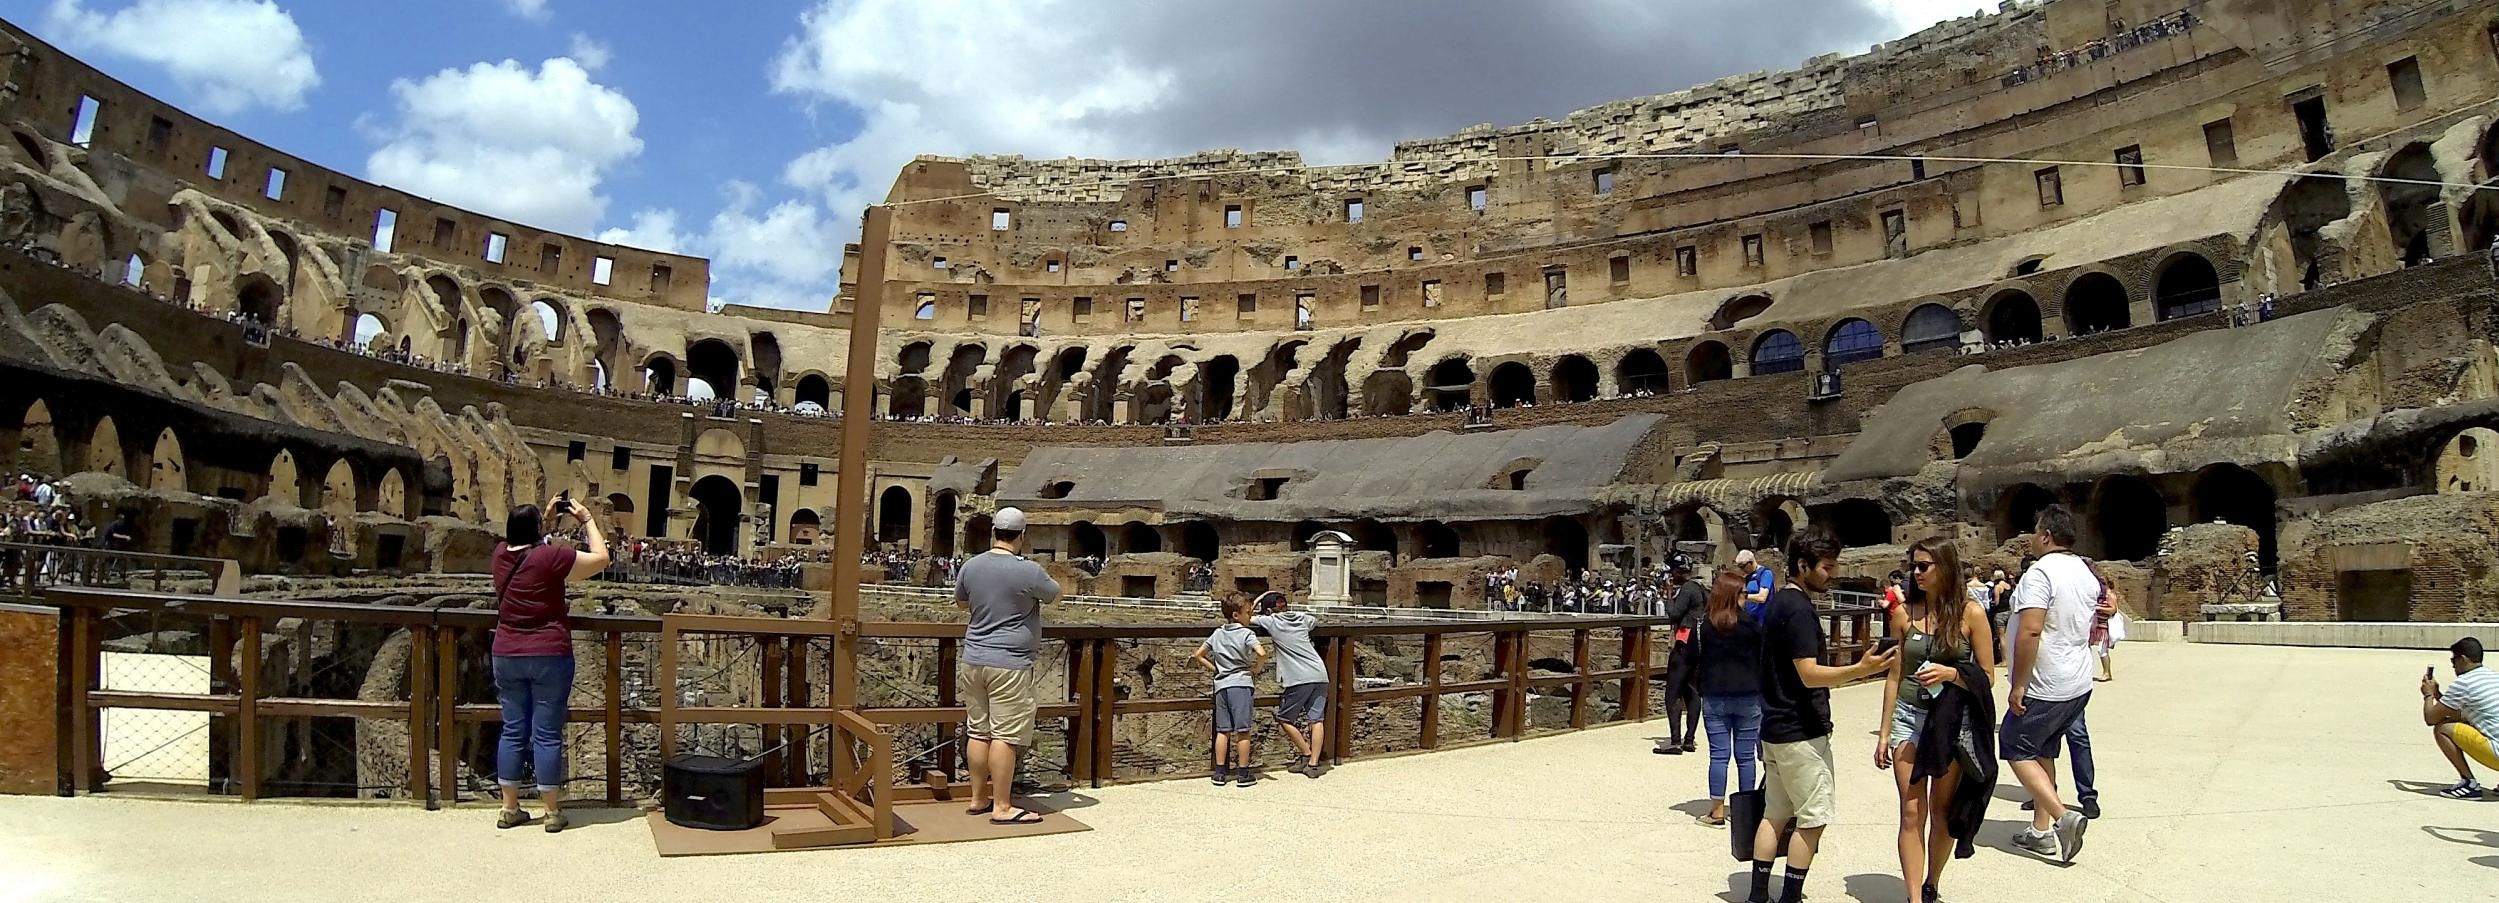 Rome: Colosseum Arena Small-Group Tour